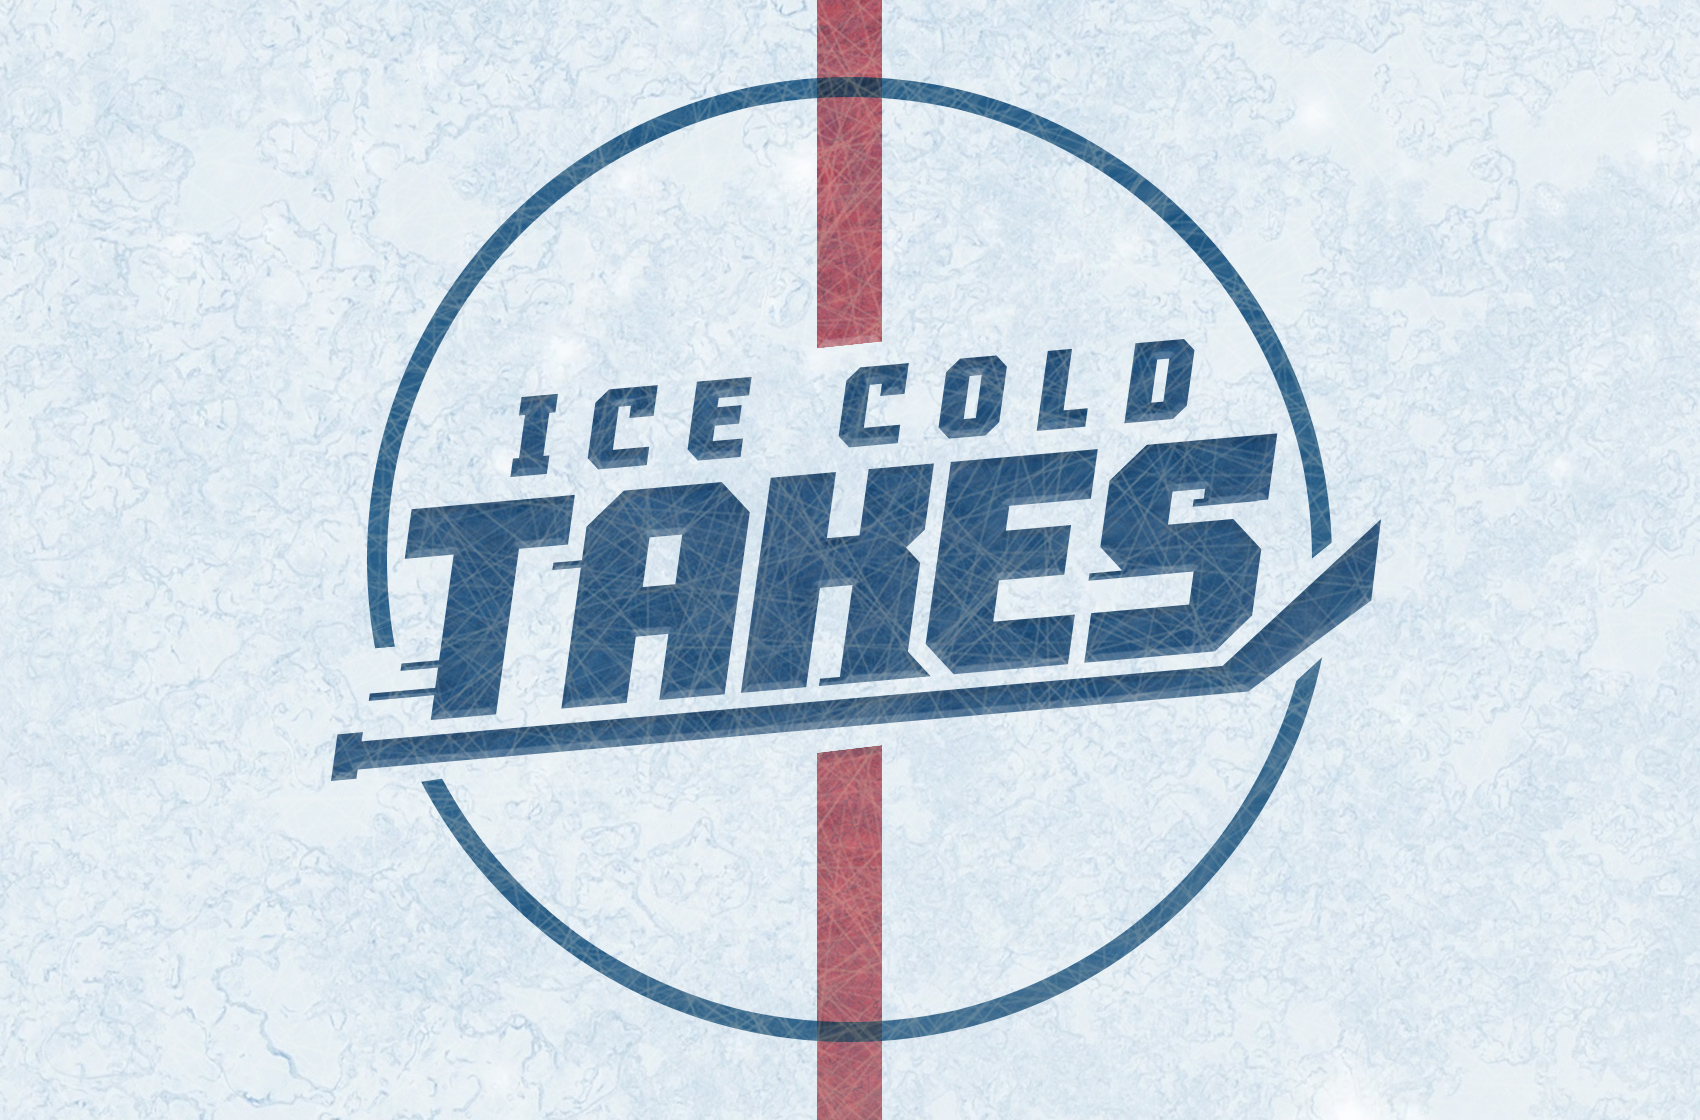 Ice Cold Takes: An ode to the great city of Philadelphia